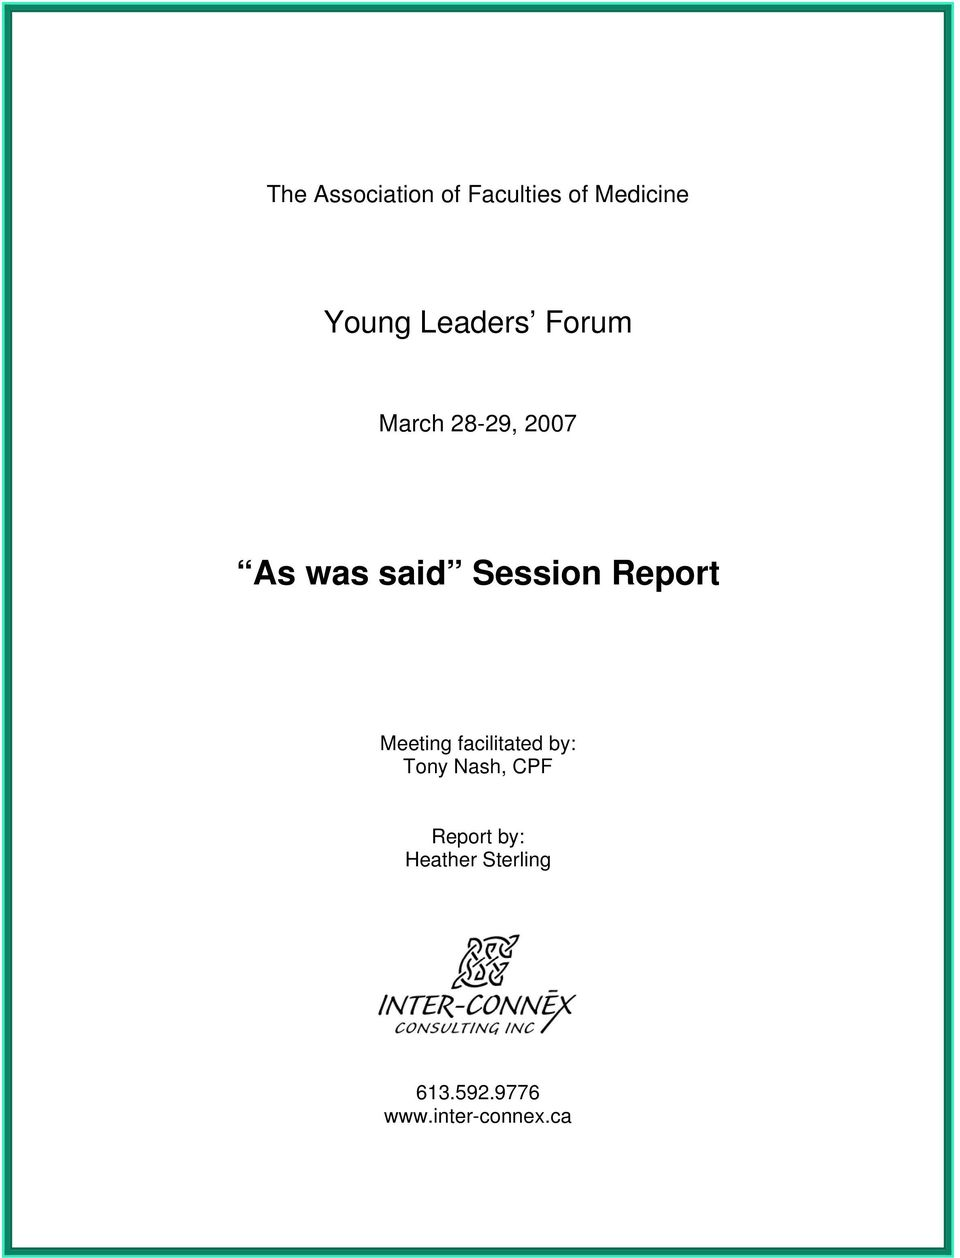 Report Meeting facilitated by: Tony Nash, CPF